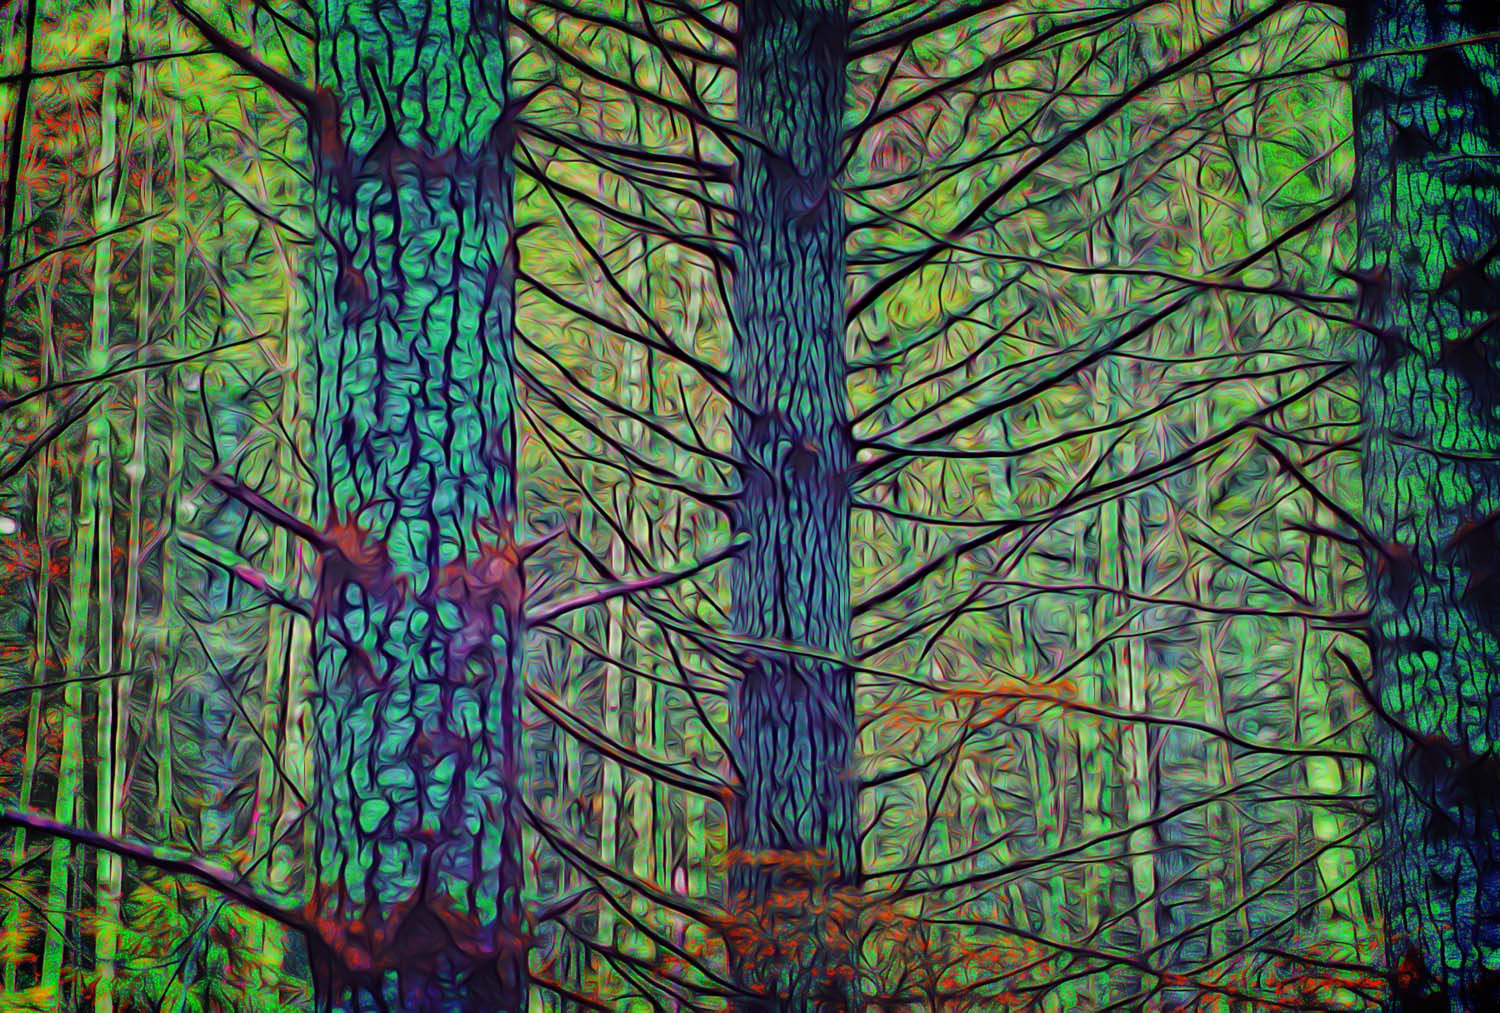 abstract forest scene